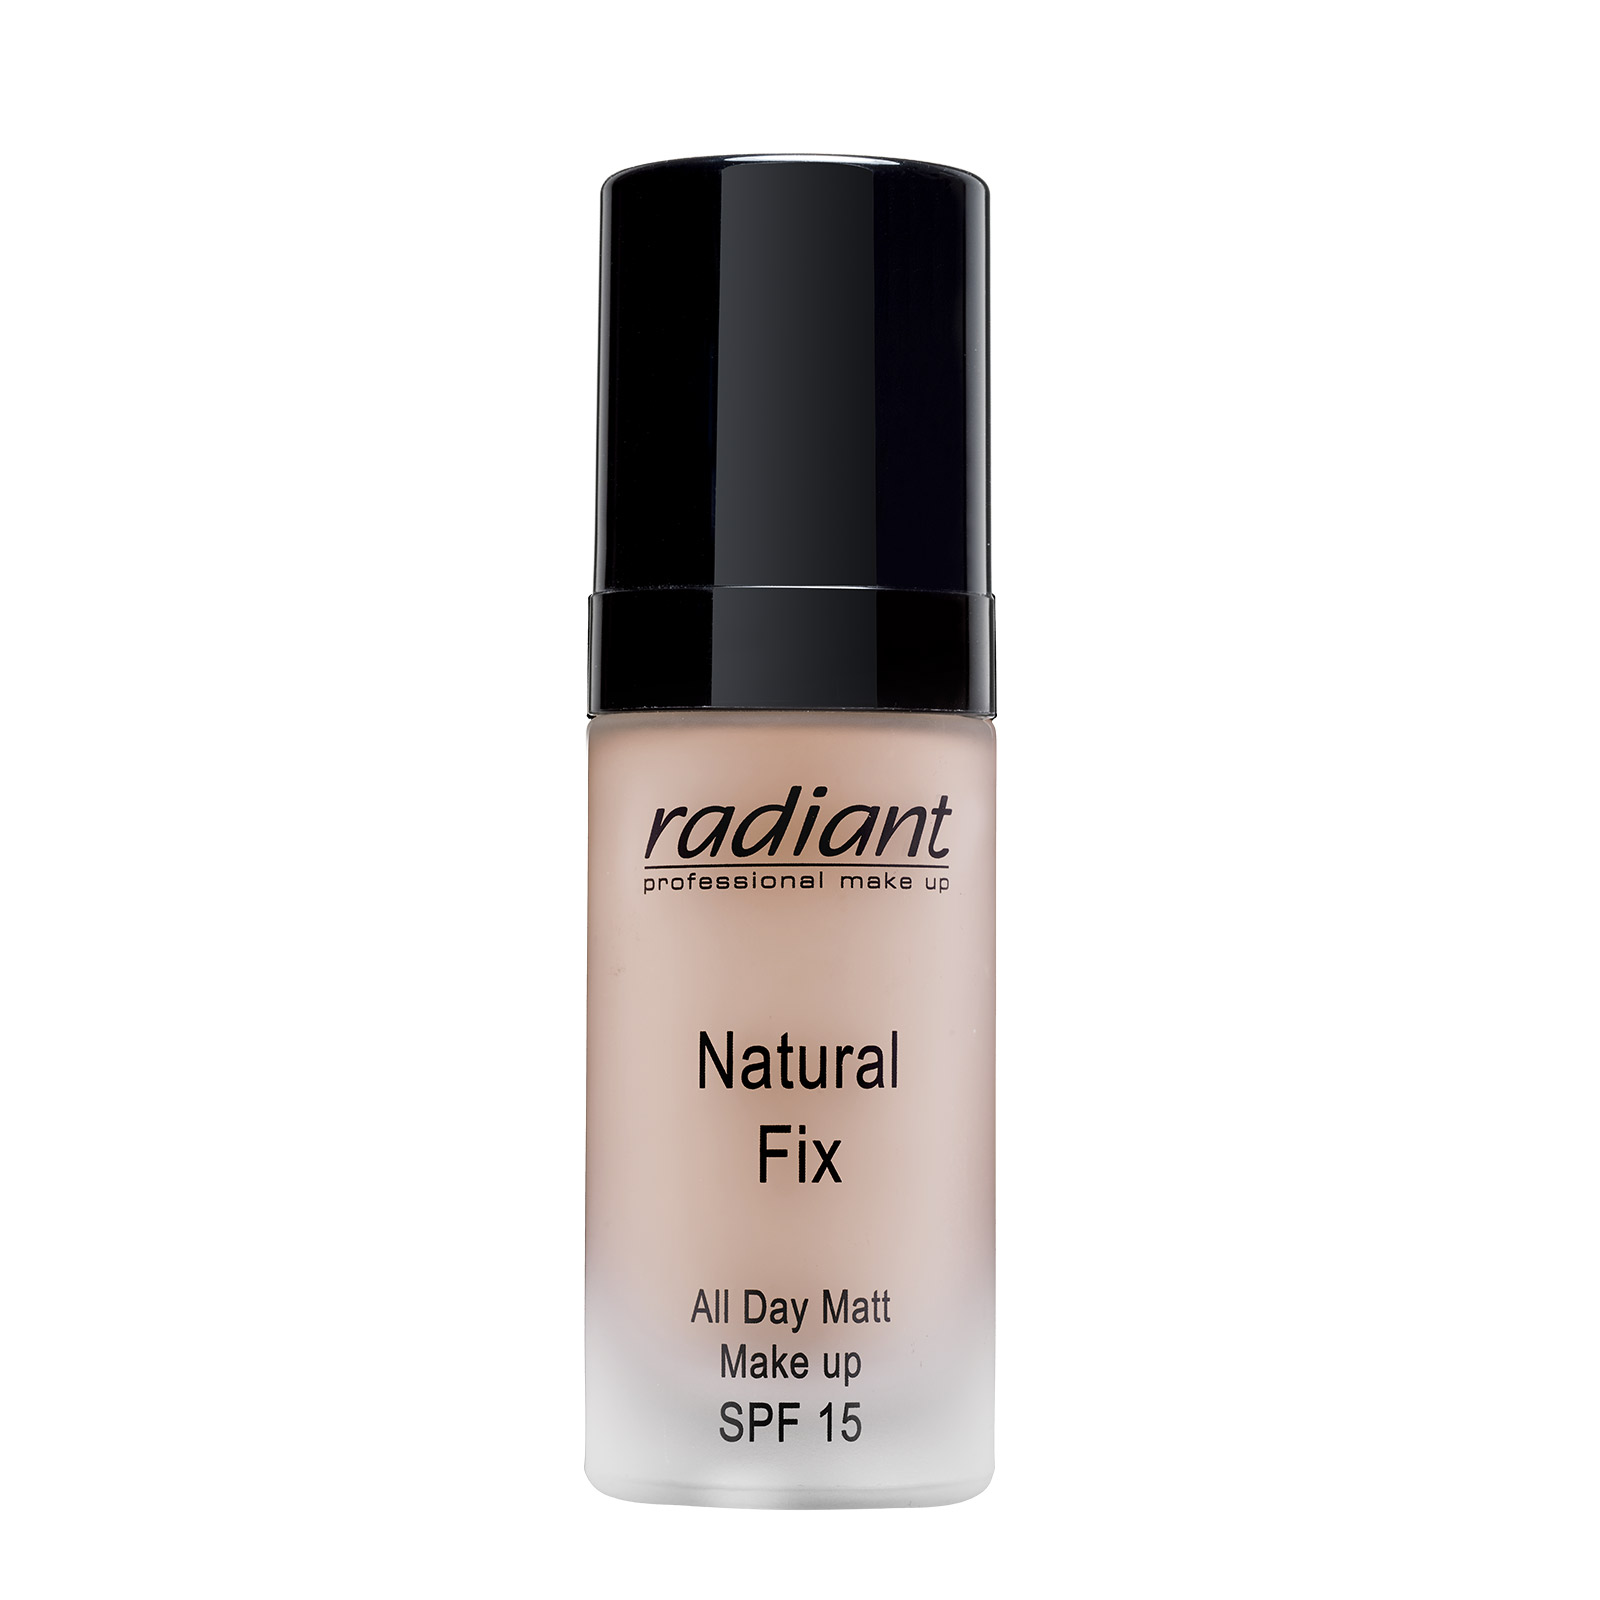 NATURAL FIX ALL DAY MATT MAKE UP SPF 15 (03 Beige)